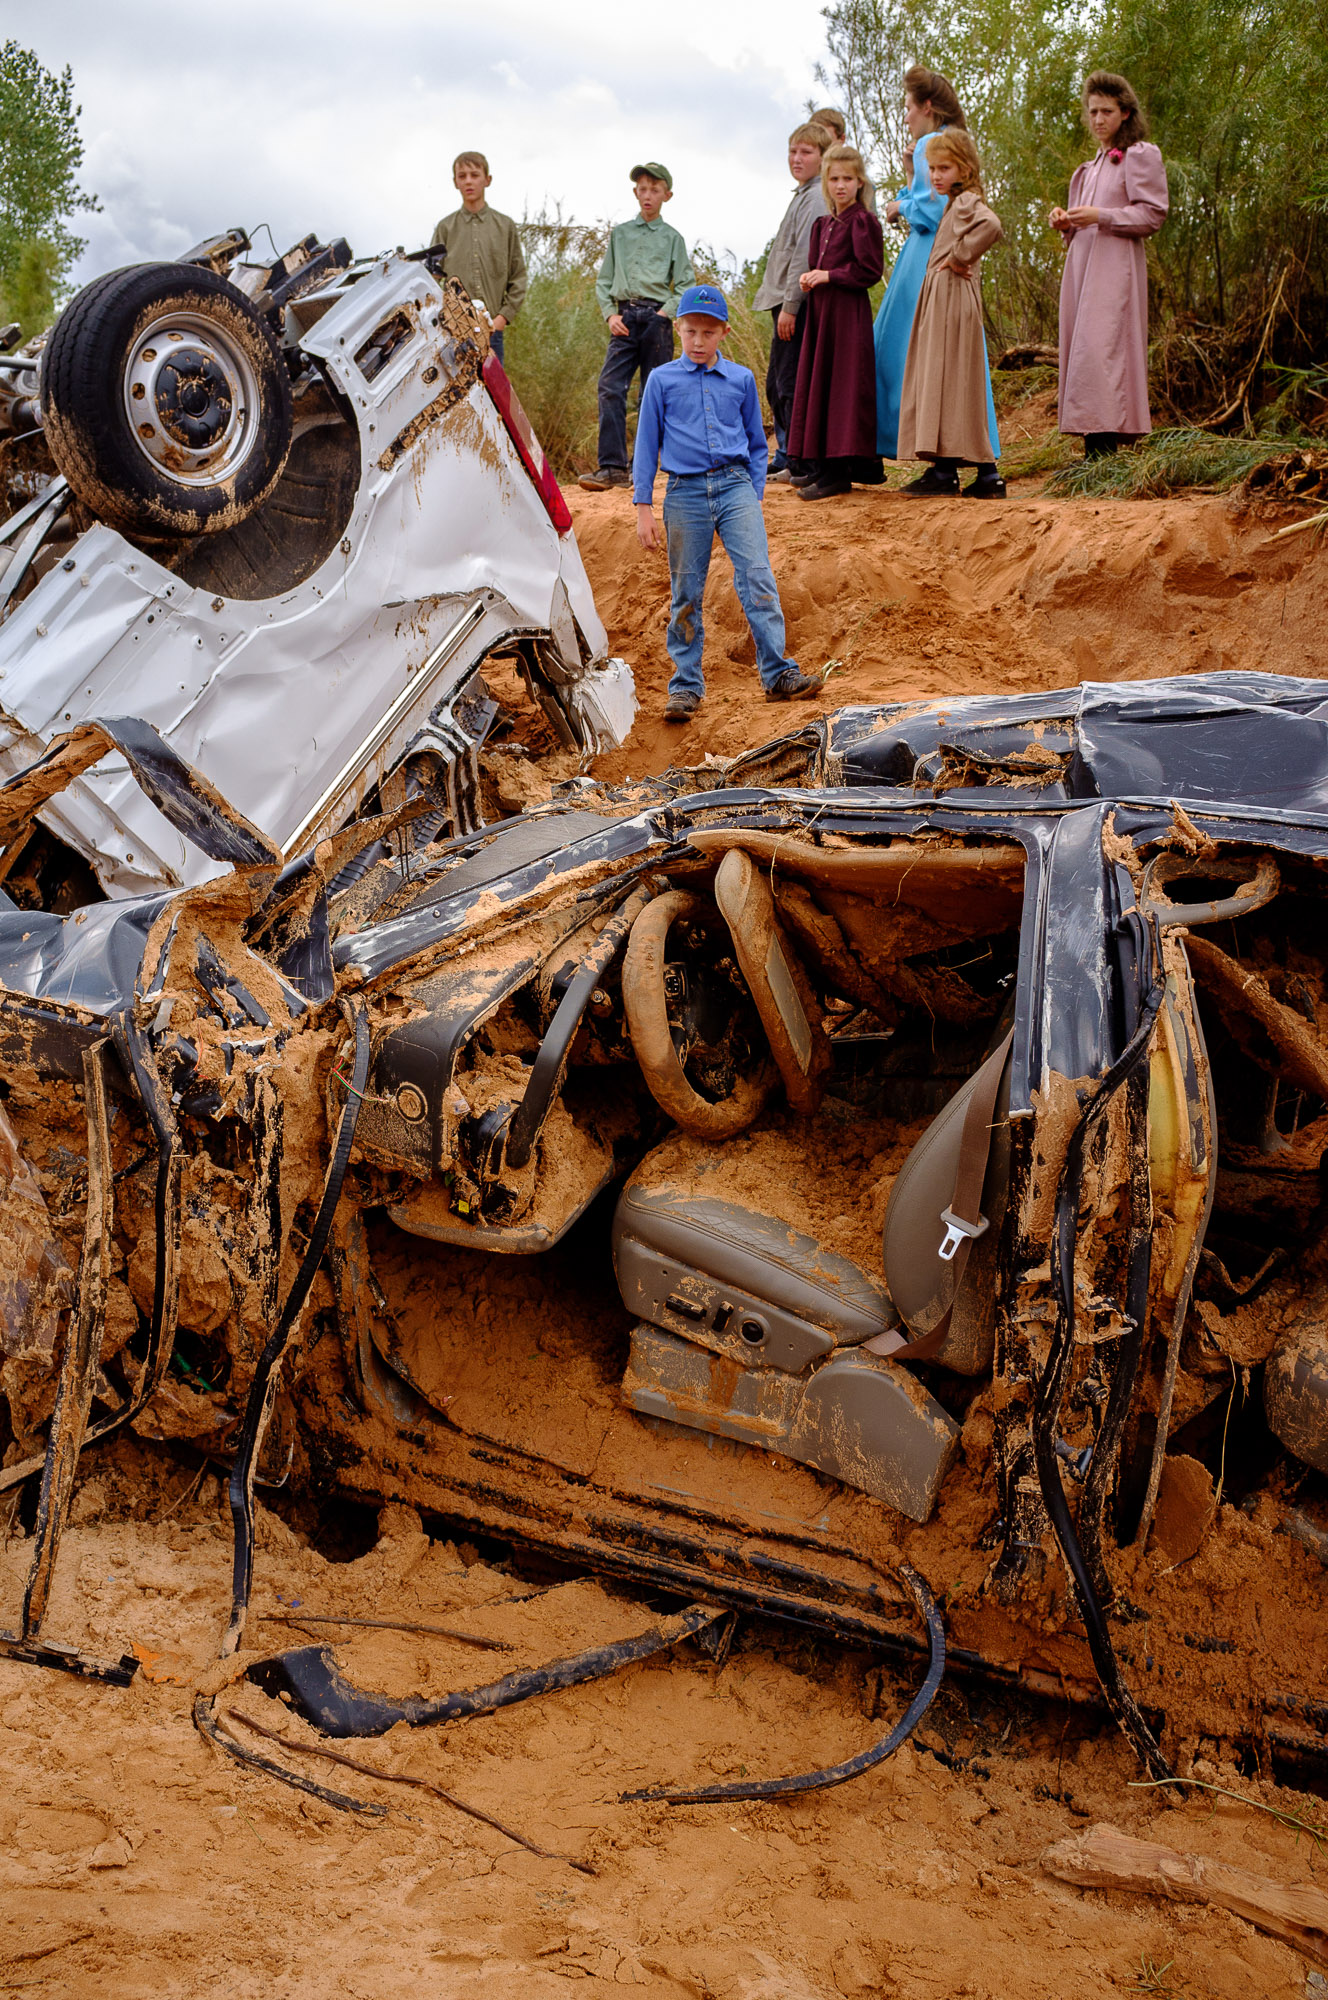 Children from the FLDS polygamous sect look at the wreckage of the two vehicles that had been swept away in a flash flood in the Short Creek Wash, killing thirteen (with another victim still missing)